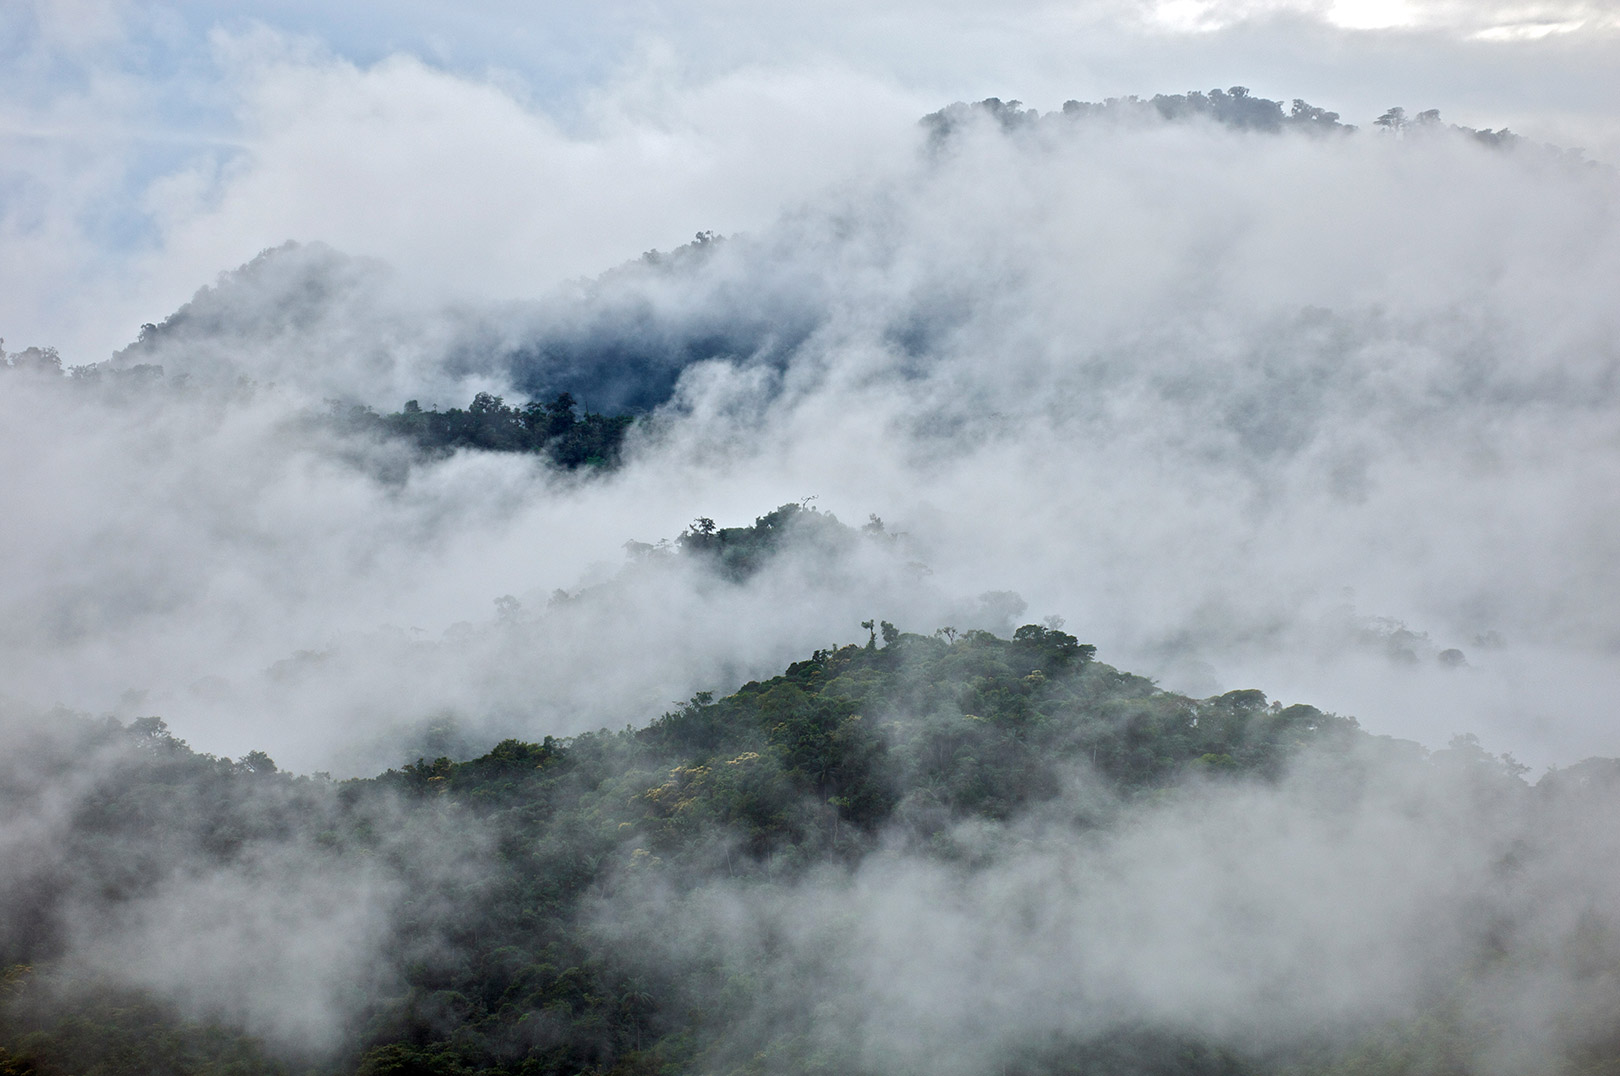 Picture of clouds and mist over the cloud forest in Mindo, Ecuador